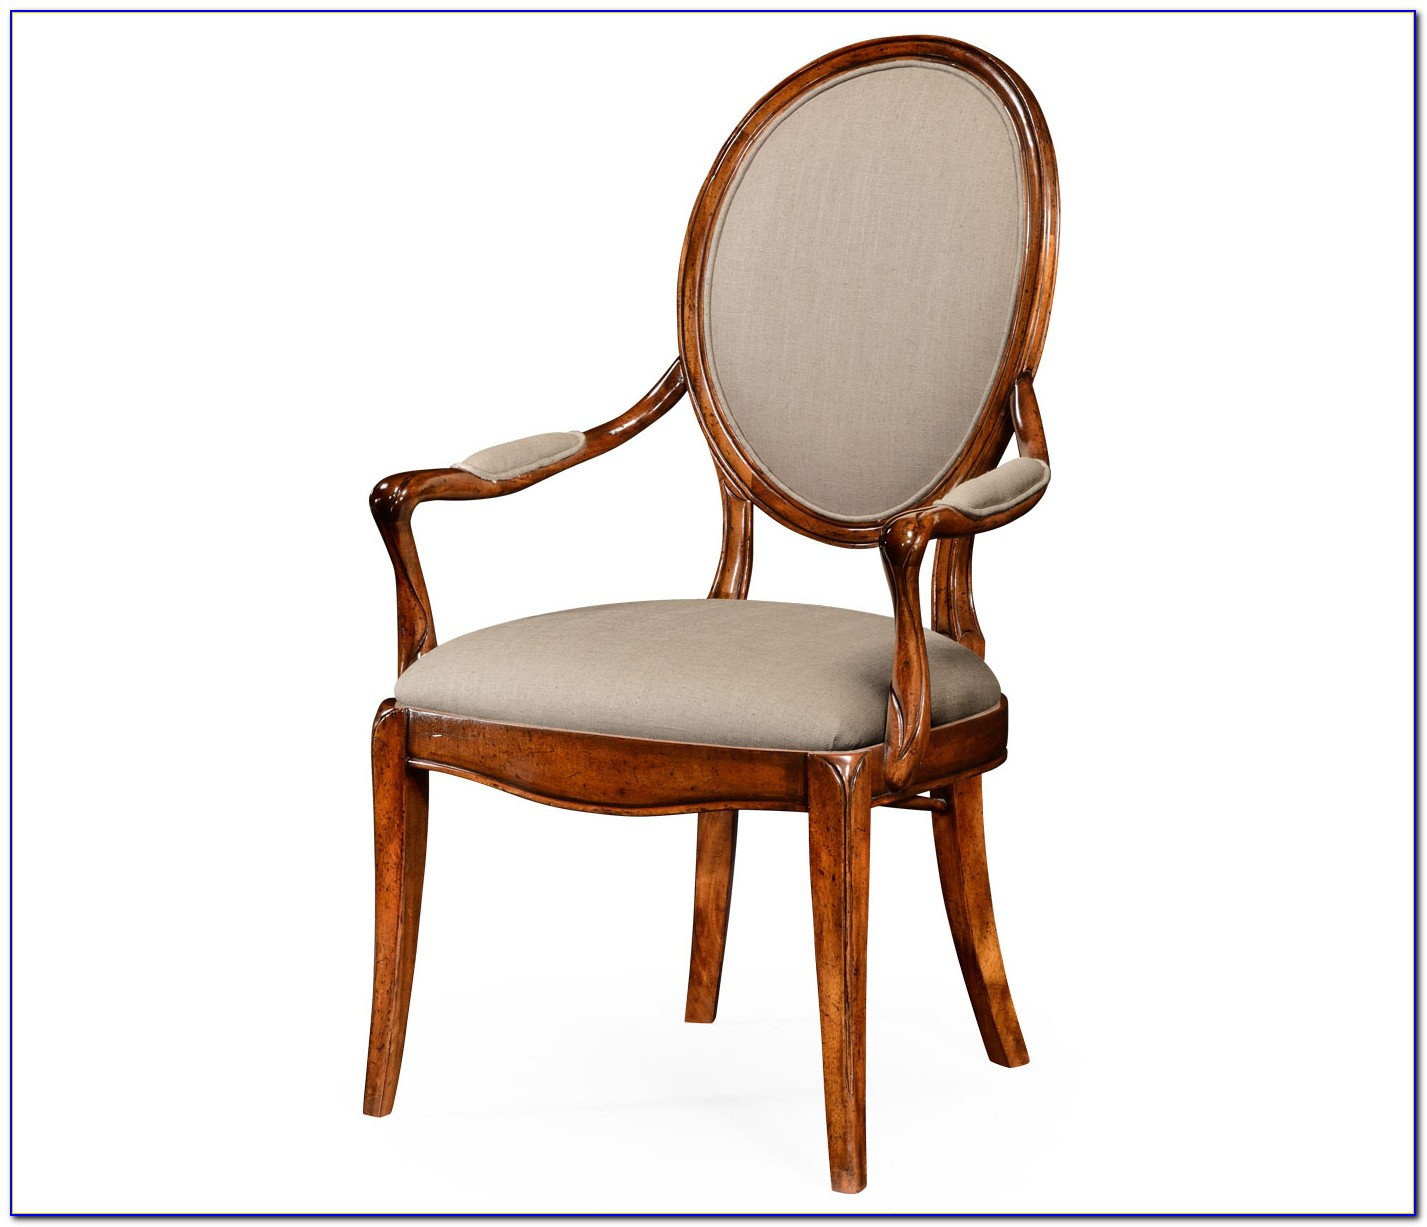 Upholstered Slope Arm Dining Chair